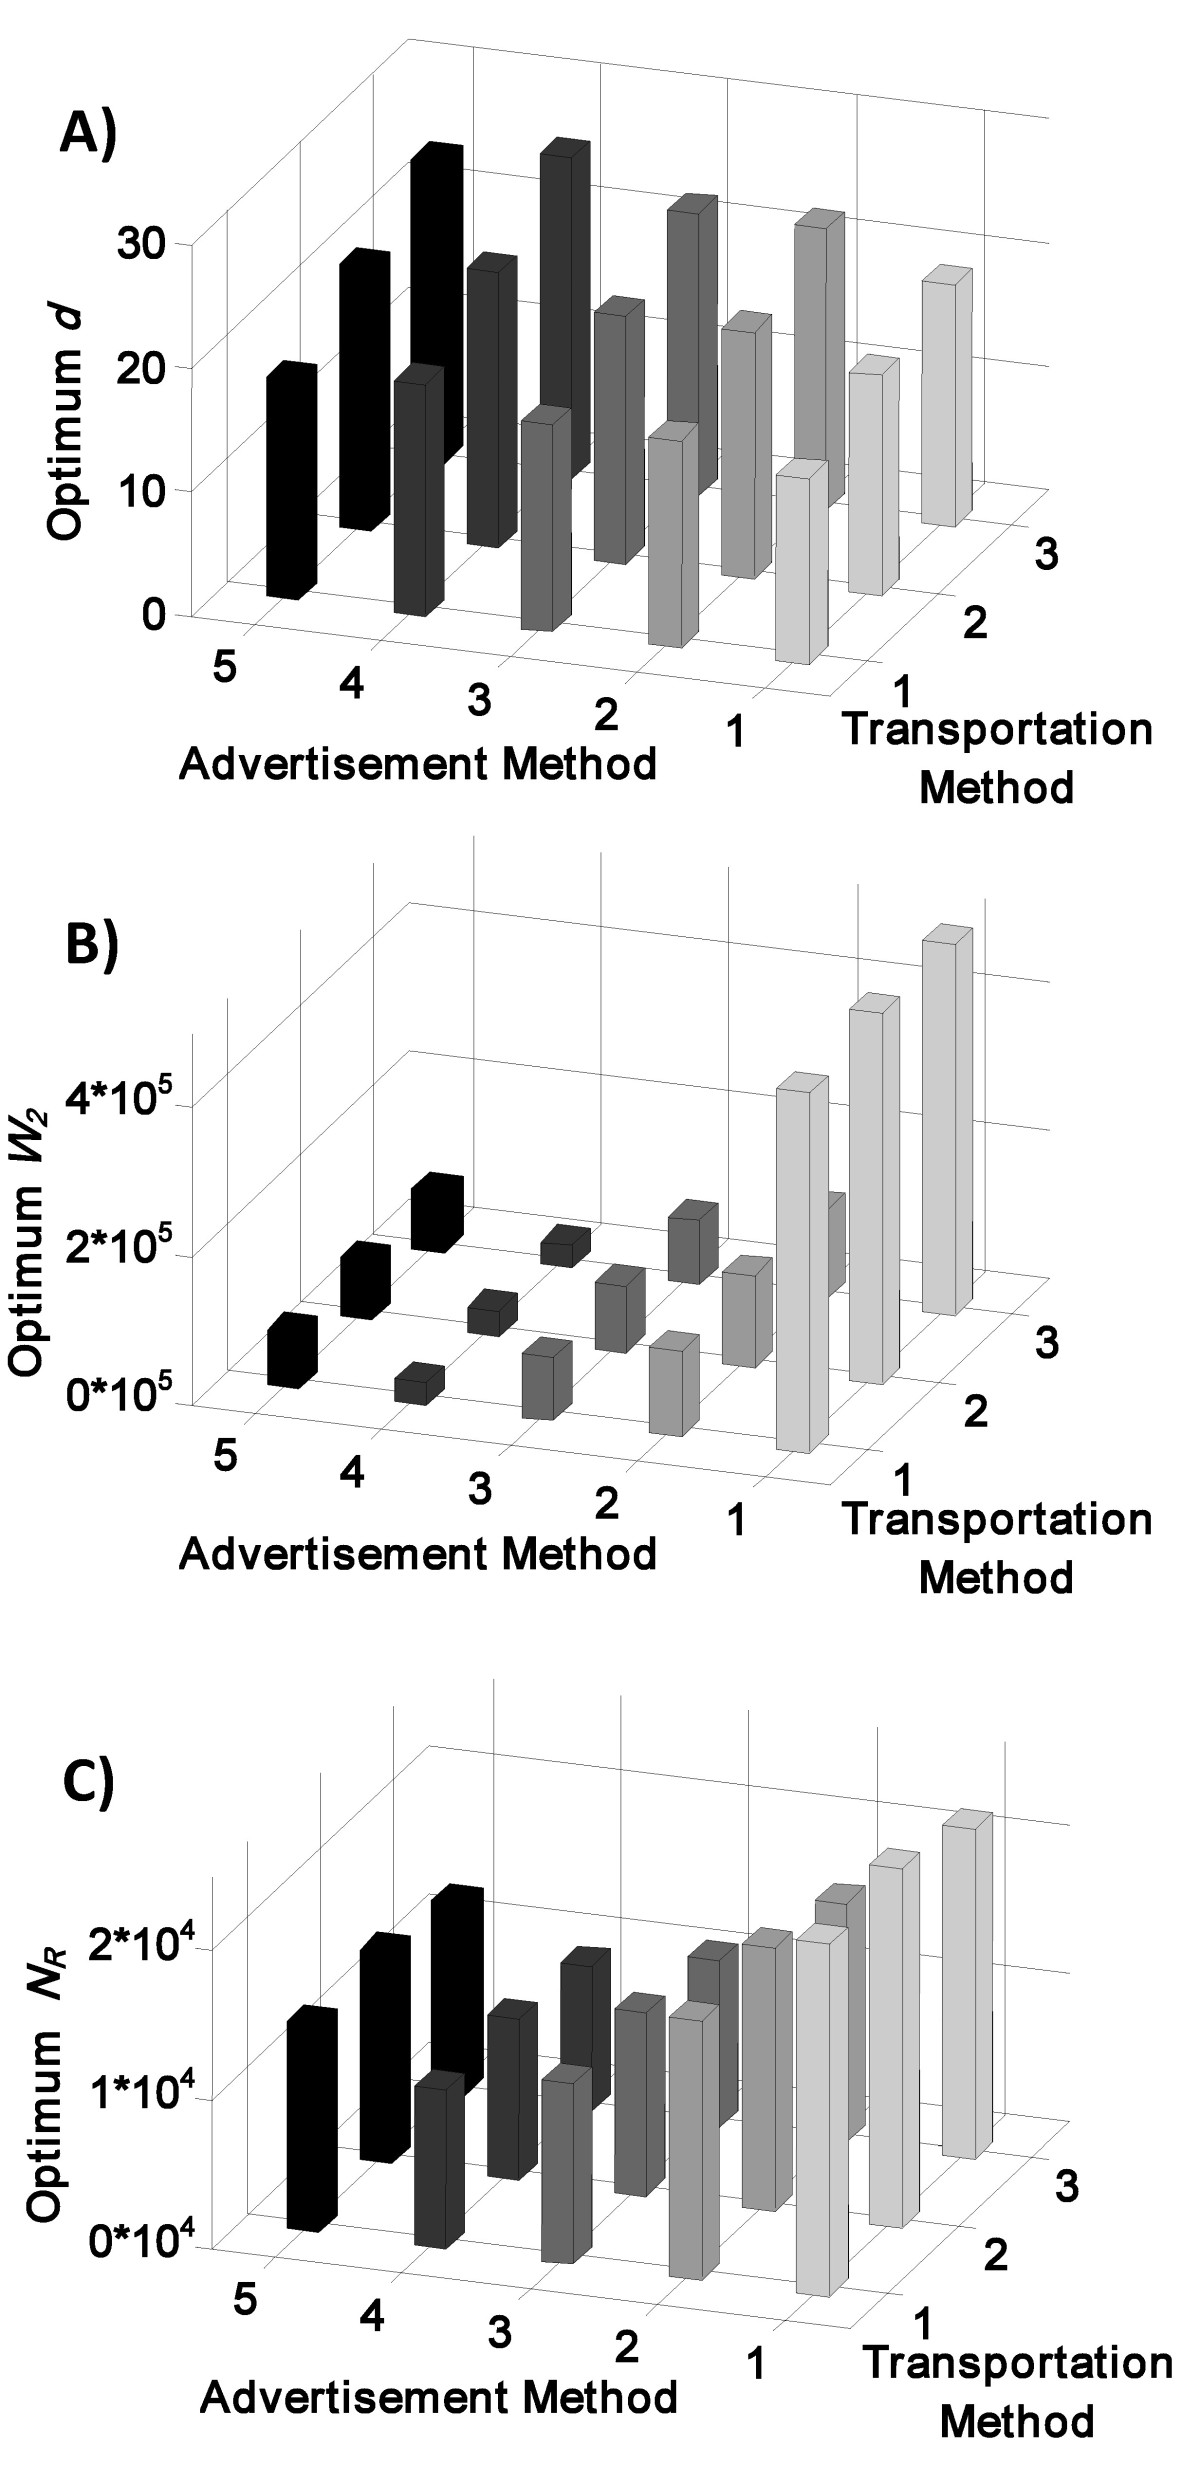 http://static-content.springer.com/image/art%3A10.1186%2F2210-4690-1-1/MediaObjects/13243_2010_Article_1_Fig4_HTML.jpg